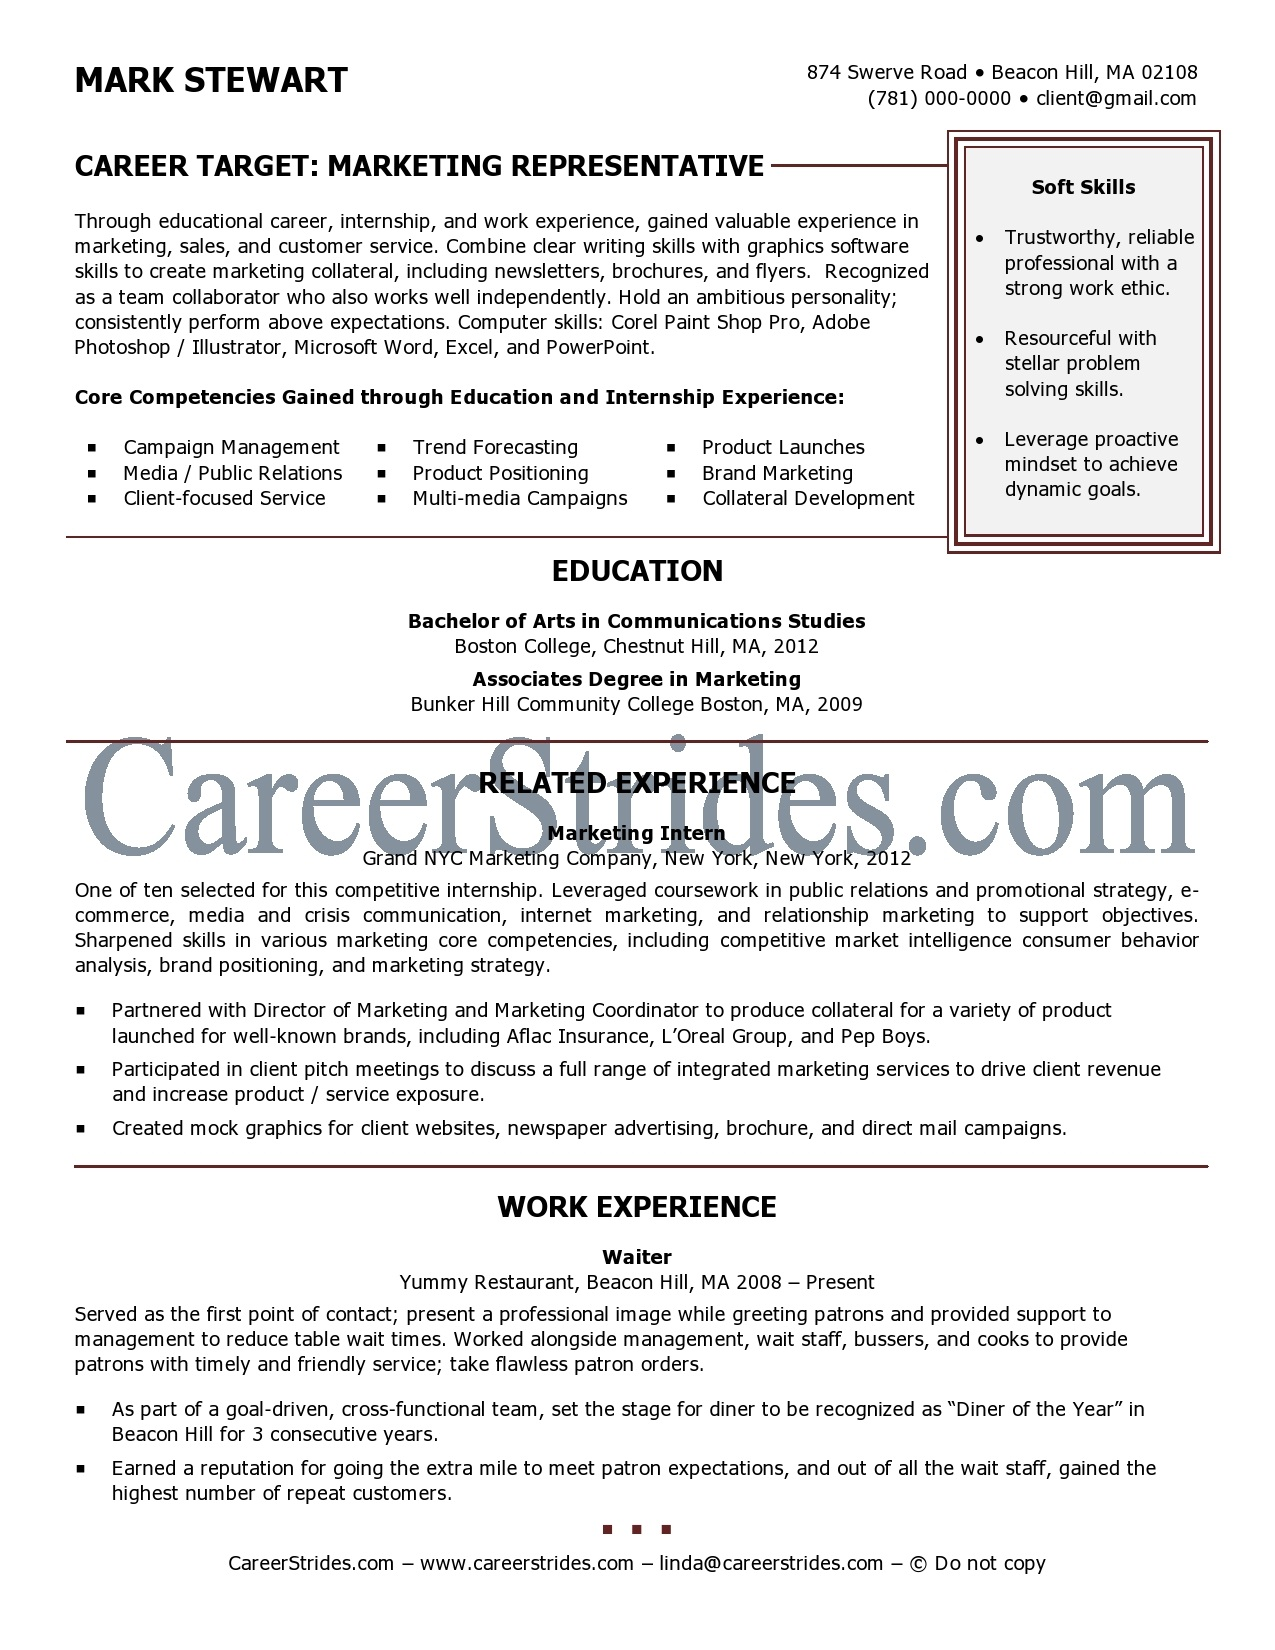 Cprw Resume Submit My Resume For Your Review 2018 Dodge Reviews